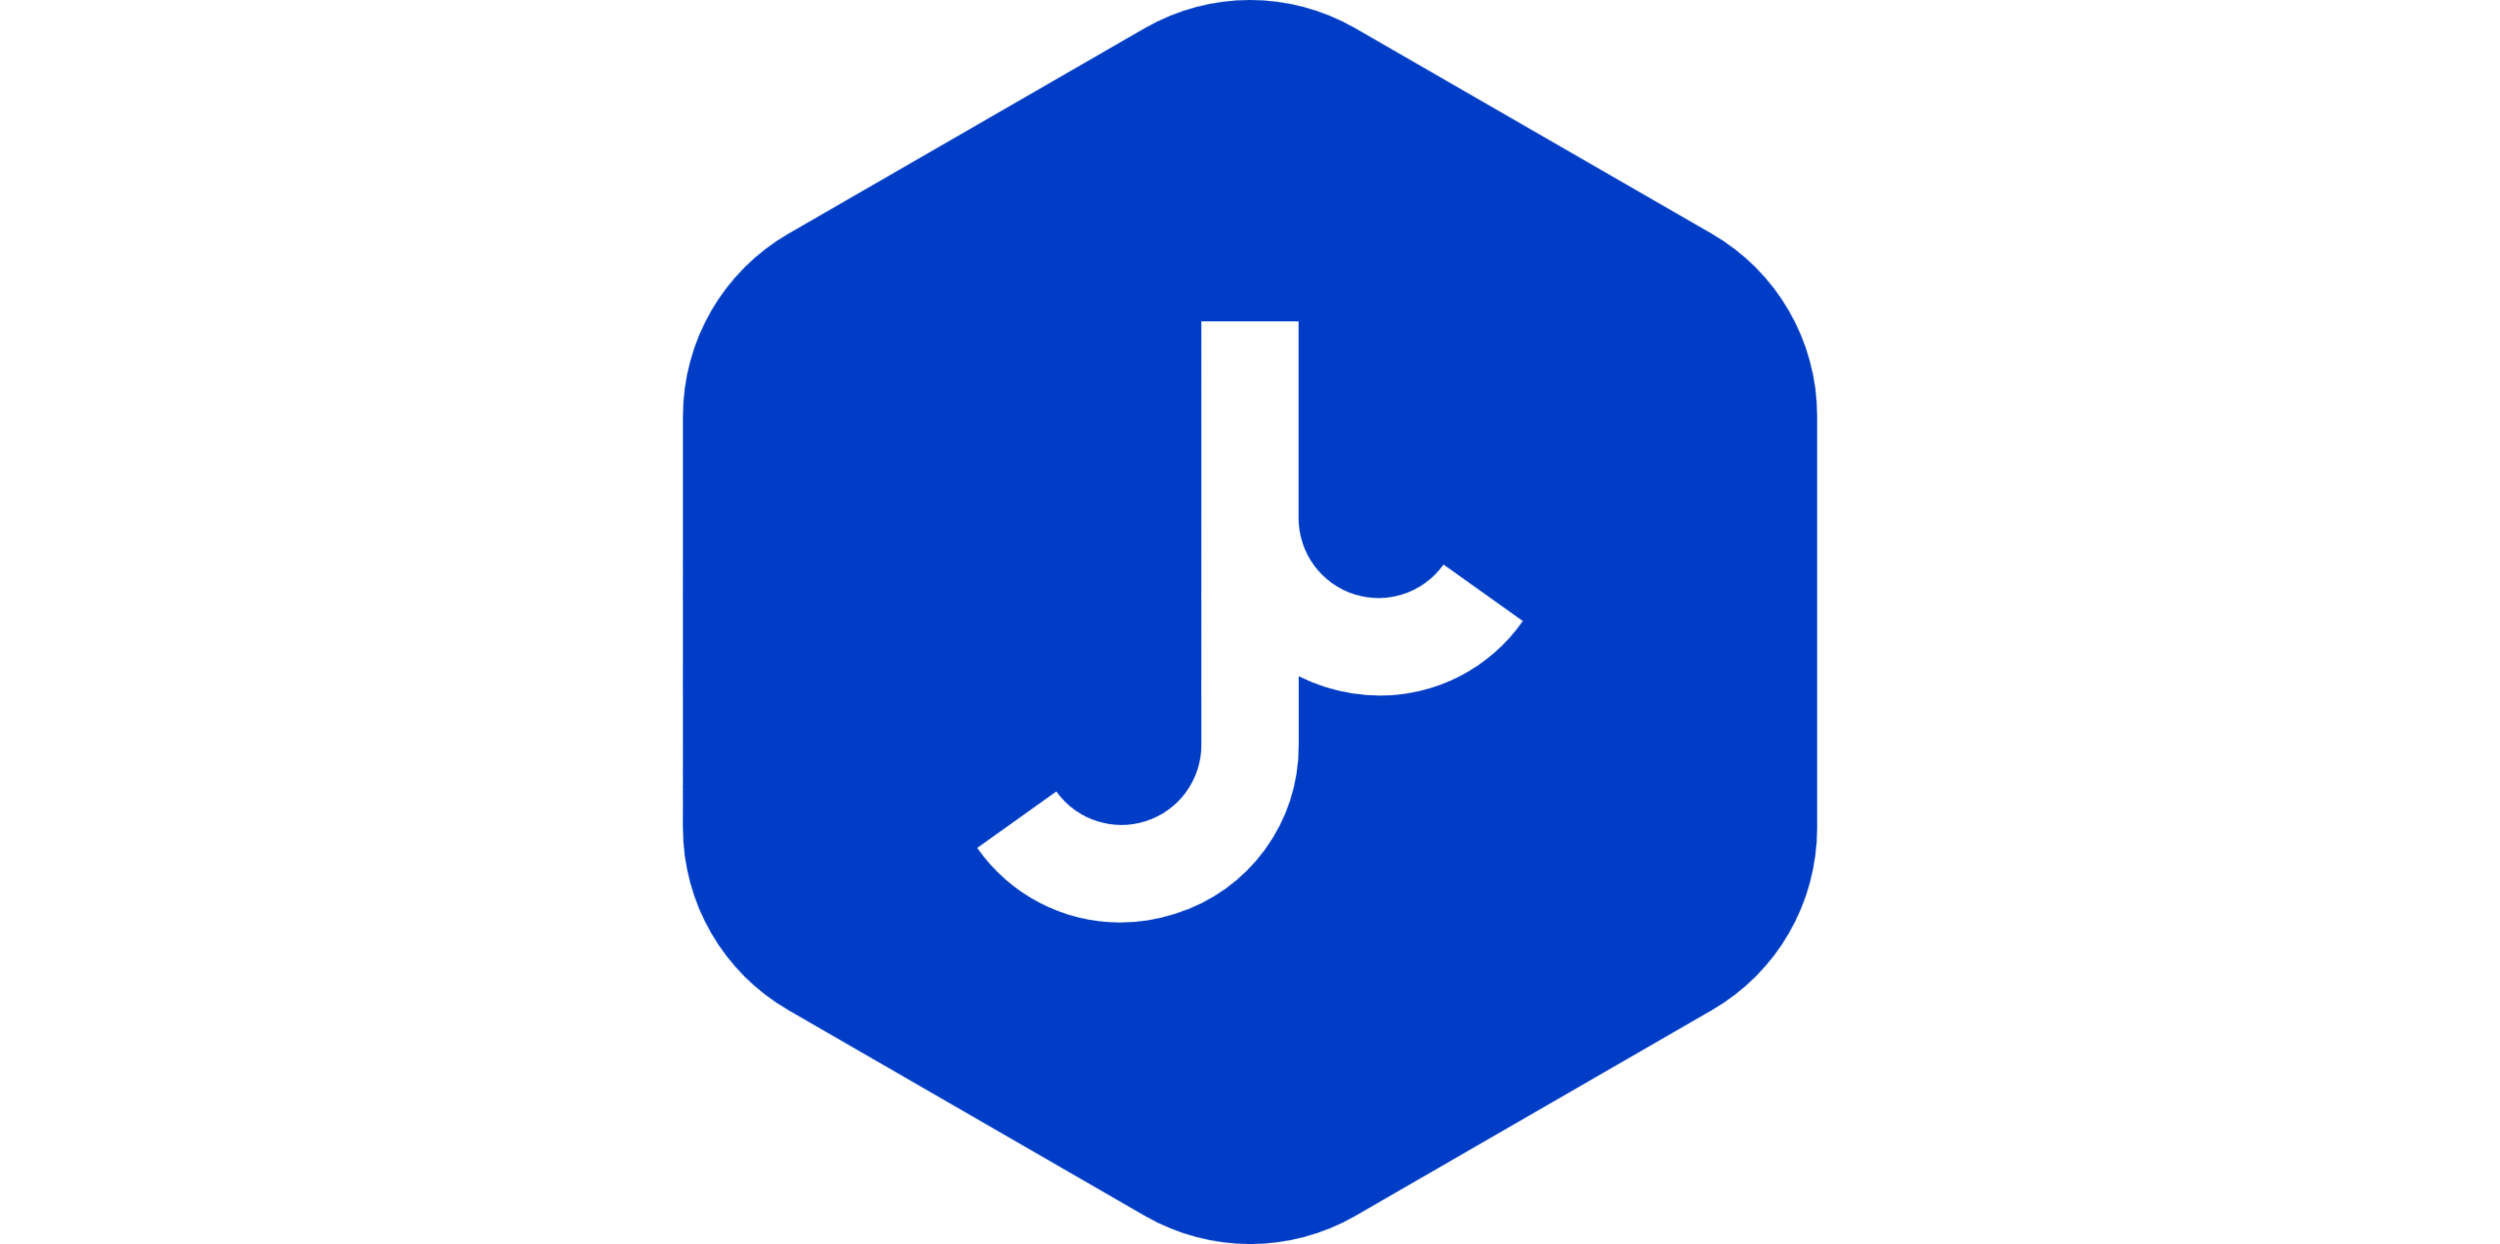 The Jibrel Network is the first blockchain protocol to allow any licensed entity to put traditional assets like currencies, bonds/sukuk and other financial instruments on the blockchain in the form of Crypto Depository Receipts (CryDRs). CryDRs have smart regulation built in whereby real-world rules and regulations are translated into solidity code to ensure that while decentralized, tokenized financial assets always follow real world rules and regulations.   The translation of financial regulations into code, is a functionality that has not been enabled by any of the blockchain providers across the globe, and this can revolutionize the way regulations are enforced. It will also help improve current legacy financial services practices by providing increased transparency, automation, traceability, and clearing and settlement efficiencies enabling instant and at near-zero fee transactions.